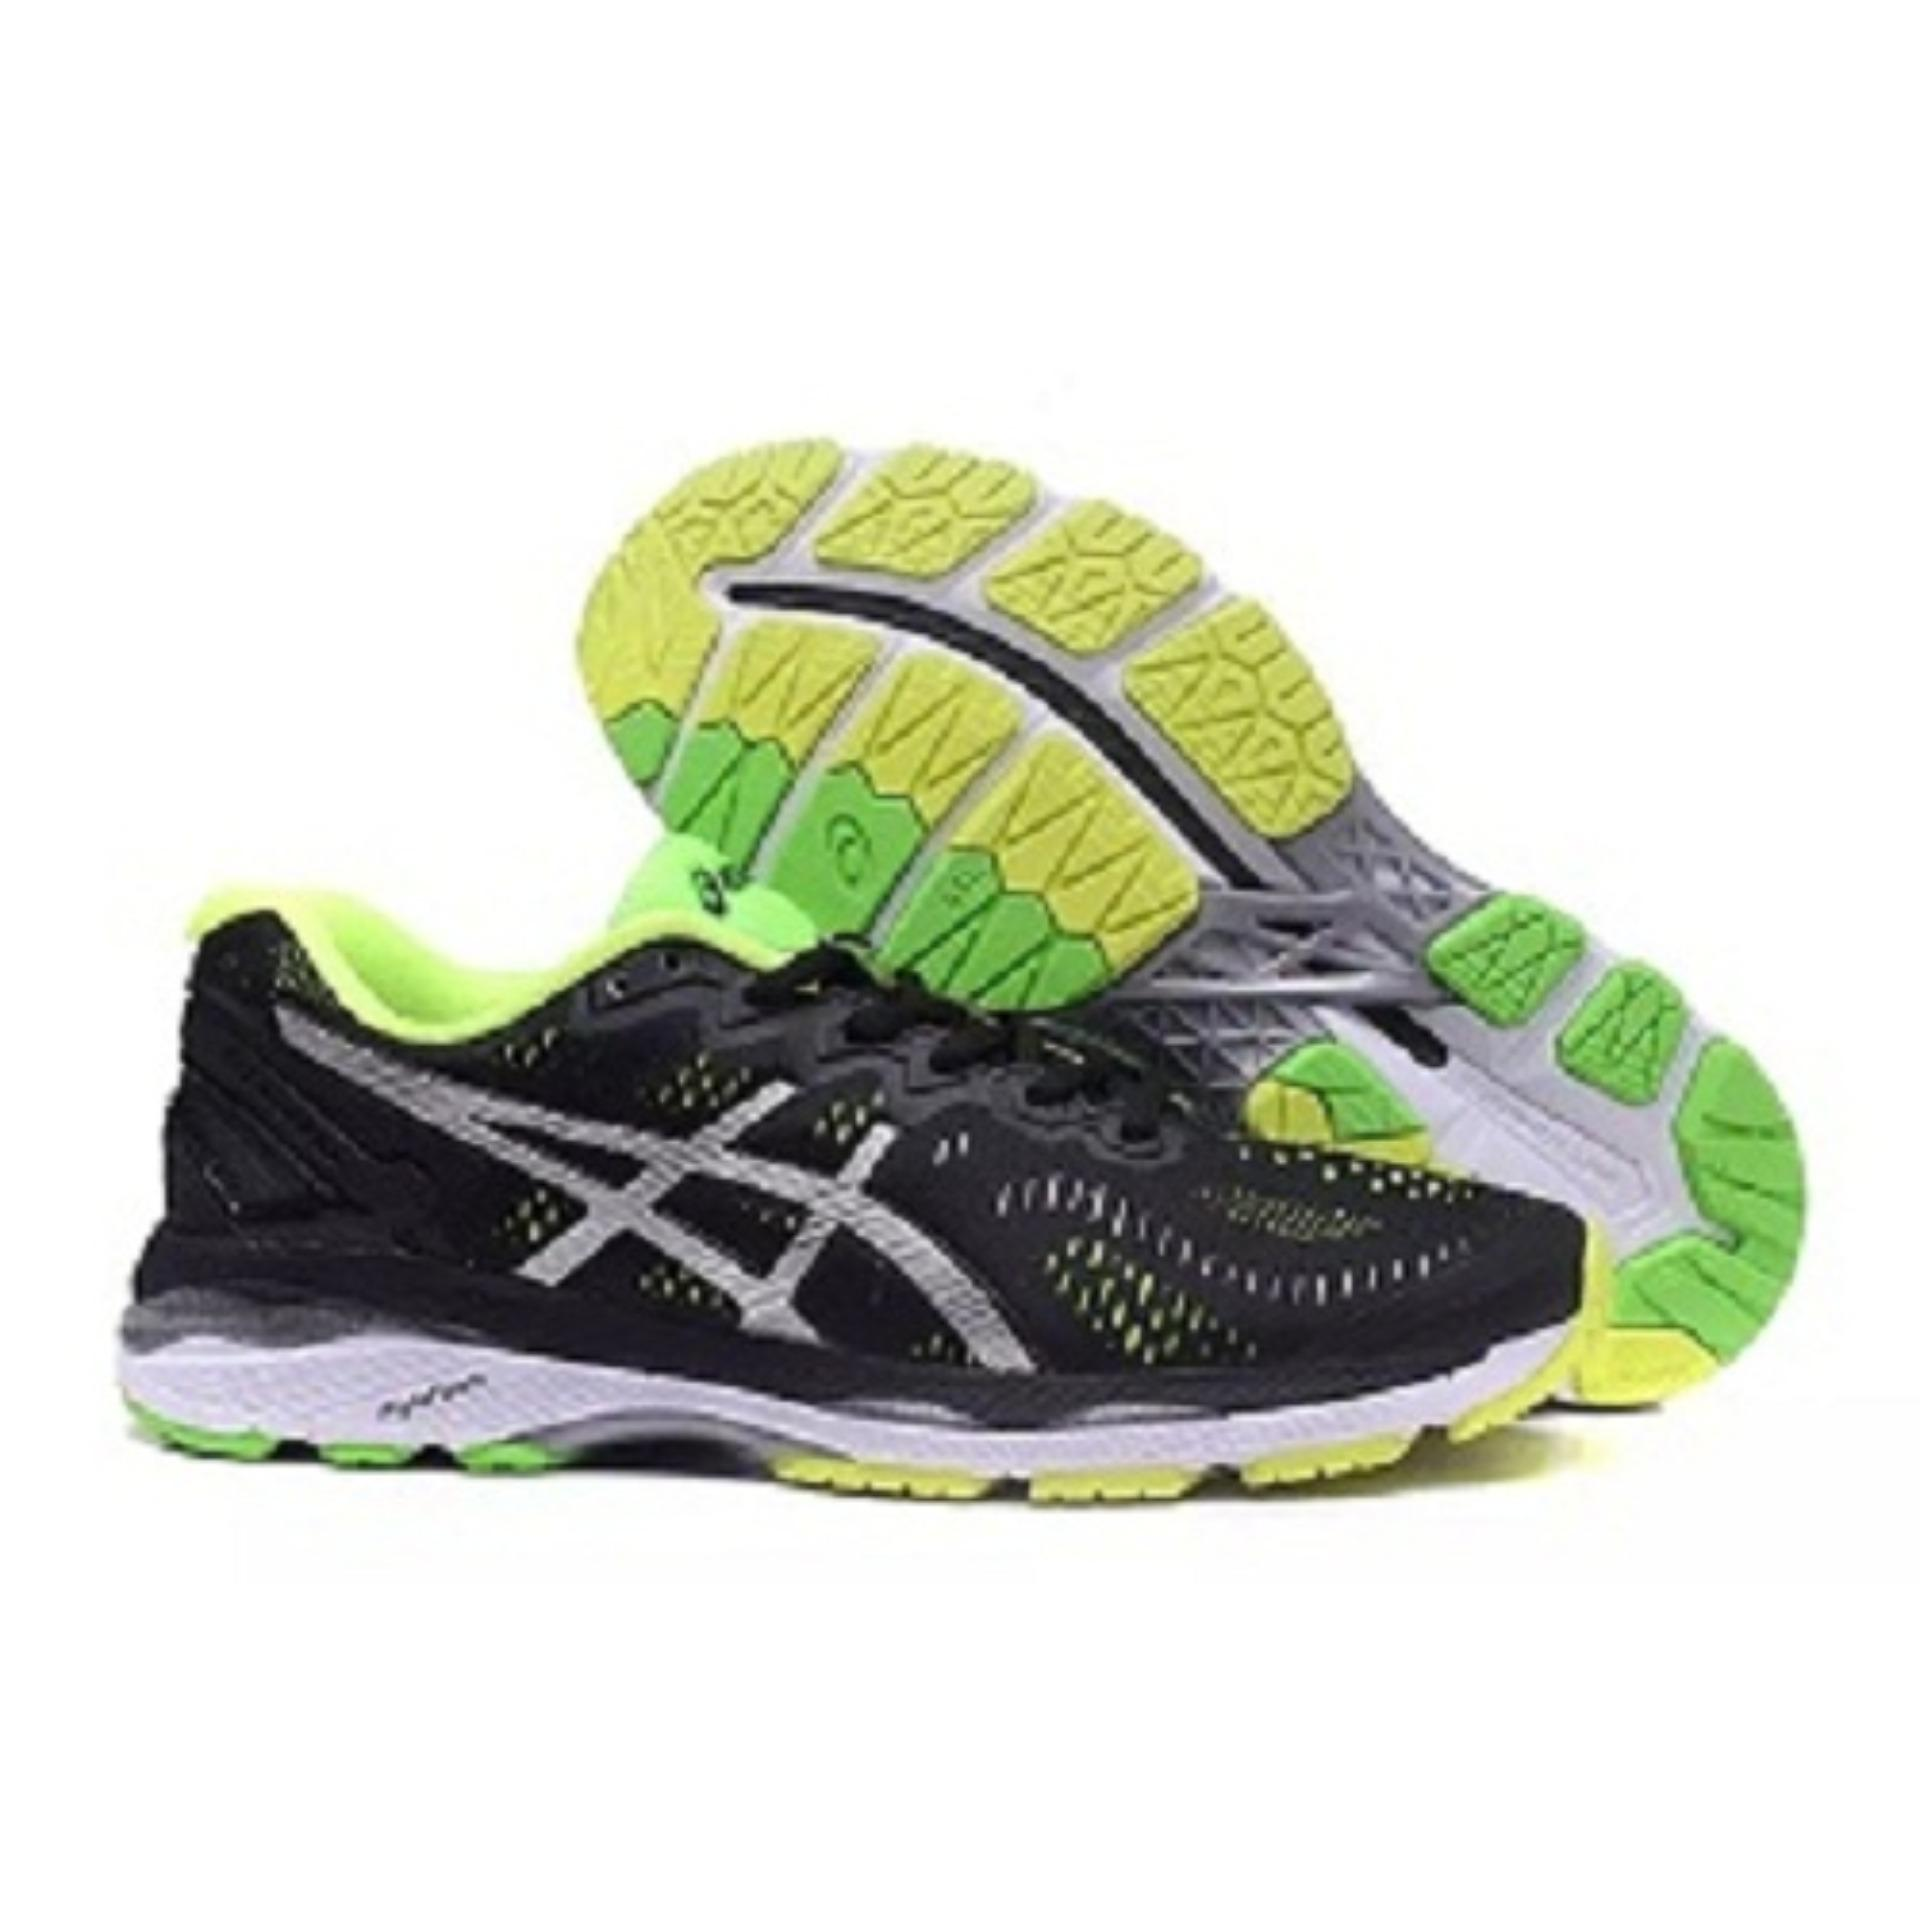 Asics Gel Kayano 24 Mens Running Shoes Extra Wide 2e Hitam - Page 4 ... 9aca5386a5